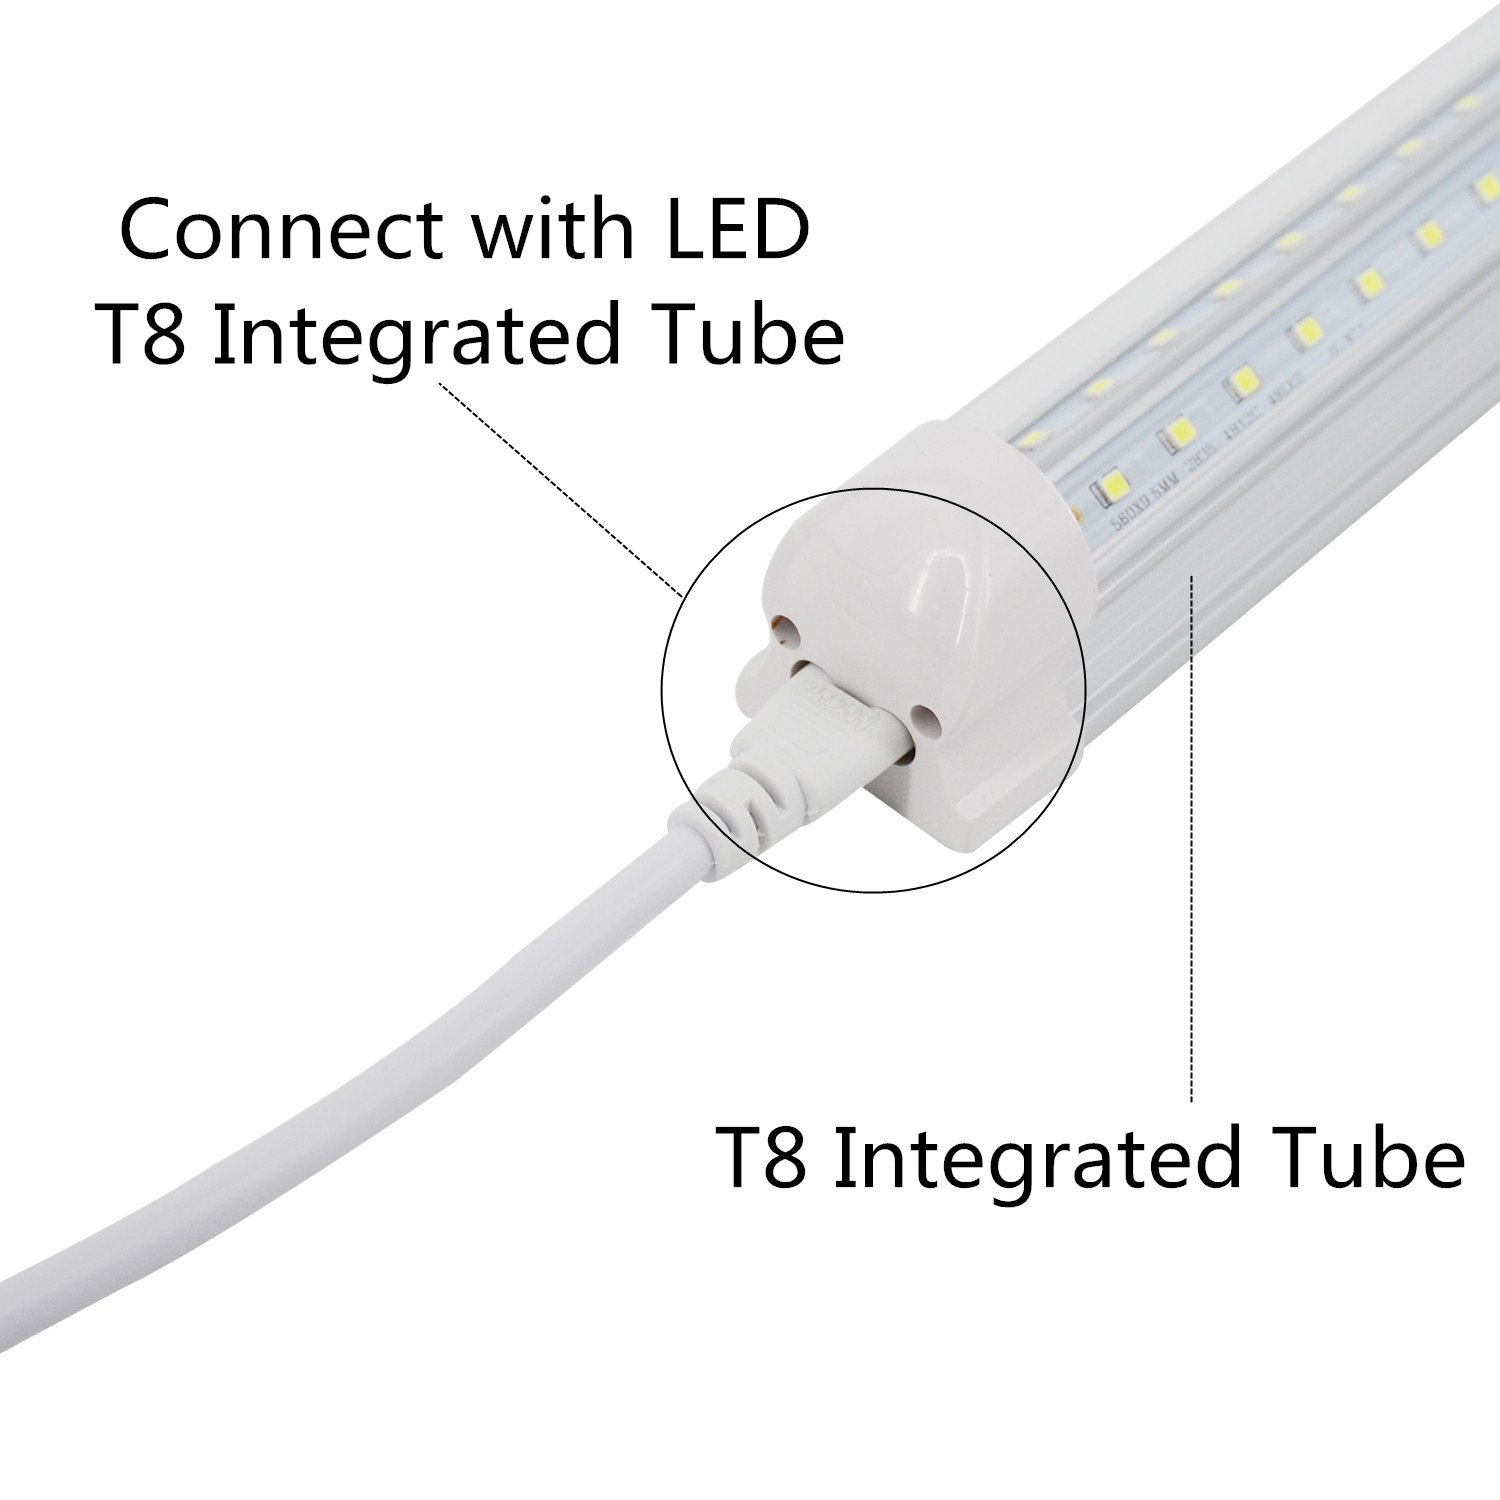 Jesled T5 T8 Double End 3pin Led Tube Connector Cable Wire 2ft Wiring Fluorescent Light Extension Cord For Integrated Bulb